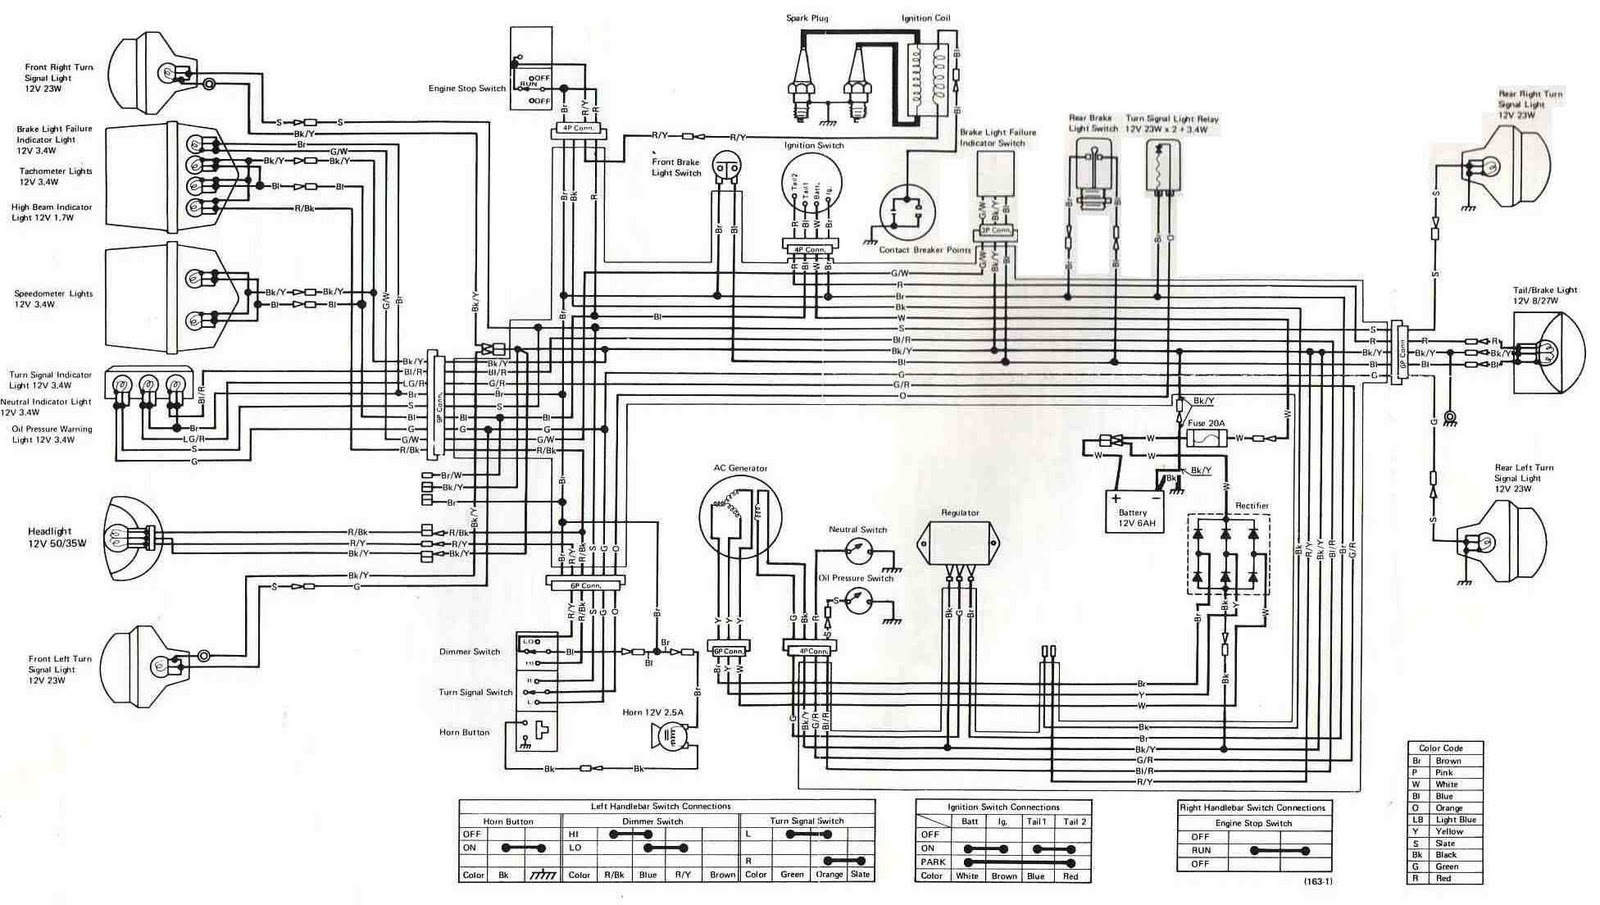 honda 250 atv engine diagram honda get free image about 2003 honda recon 250 wiring diagram 2000 honda recon 250 wiring diagram [ 1600 x 905 Pixel ]